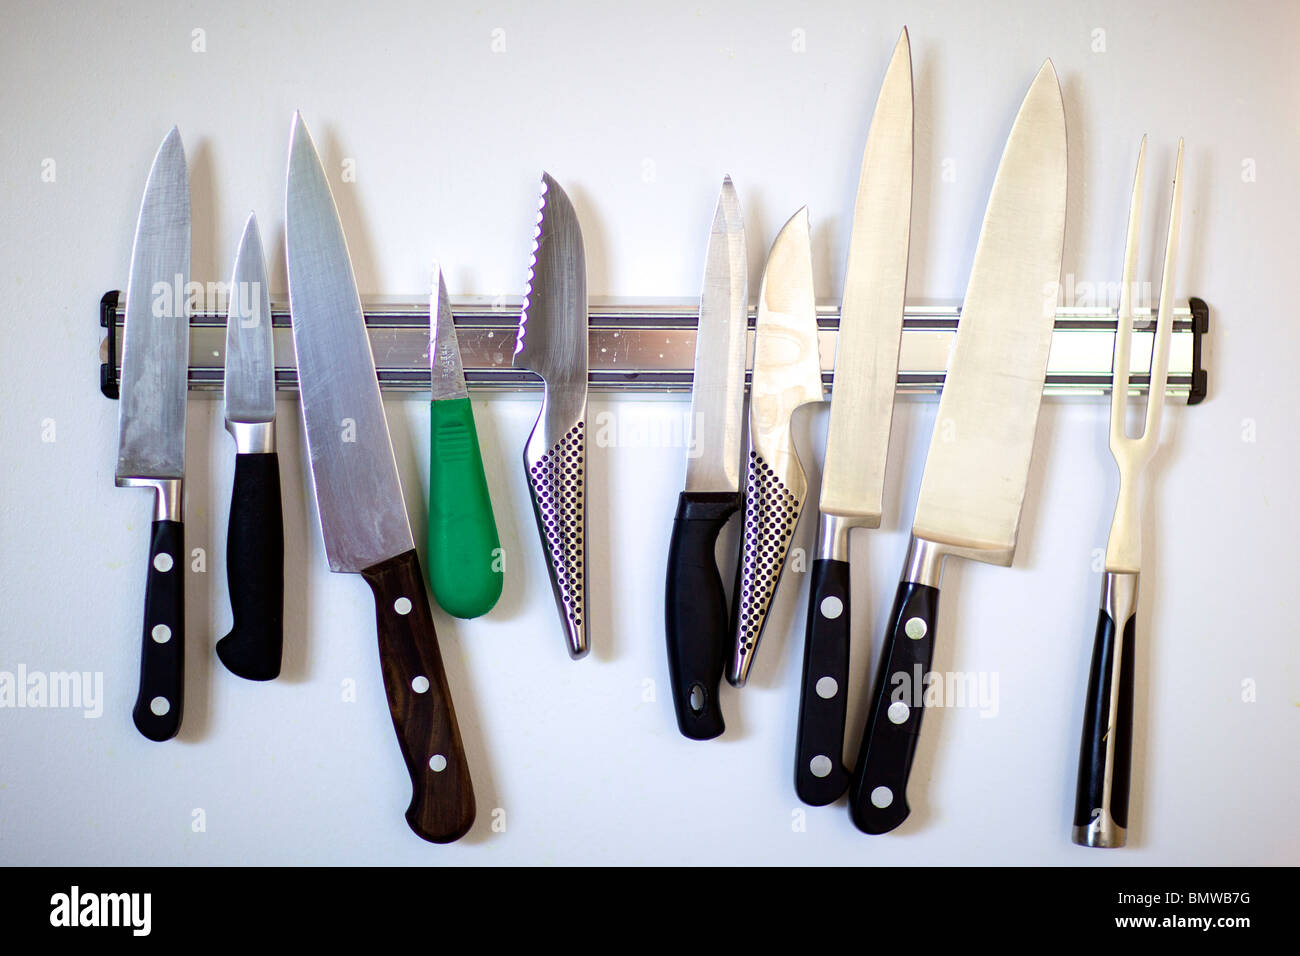 professional kitchen knives outdoor kitchens sydney hanging on a wall stock photo 30061124